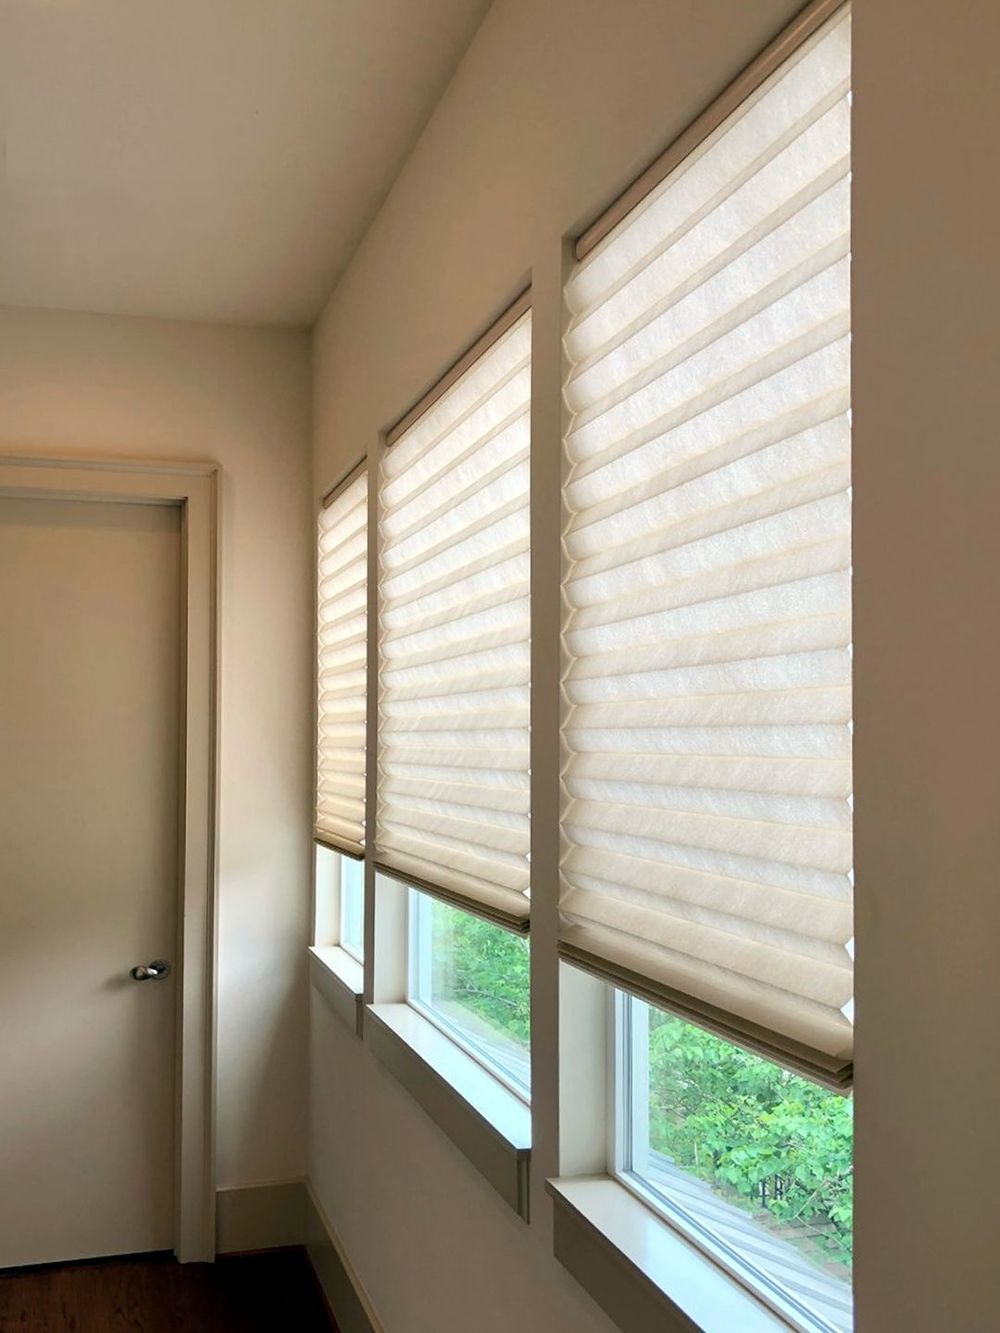 A focused look at this home's glass windows featuring window shades. The house also features hardwood flooring.